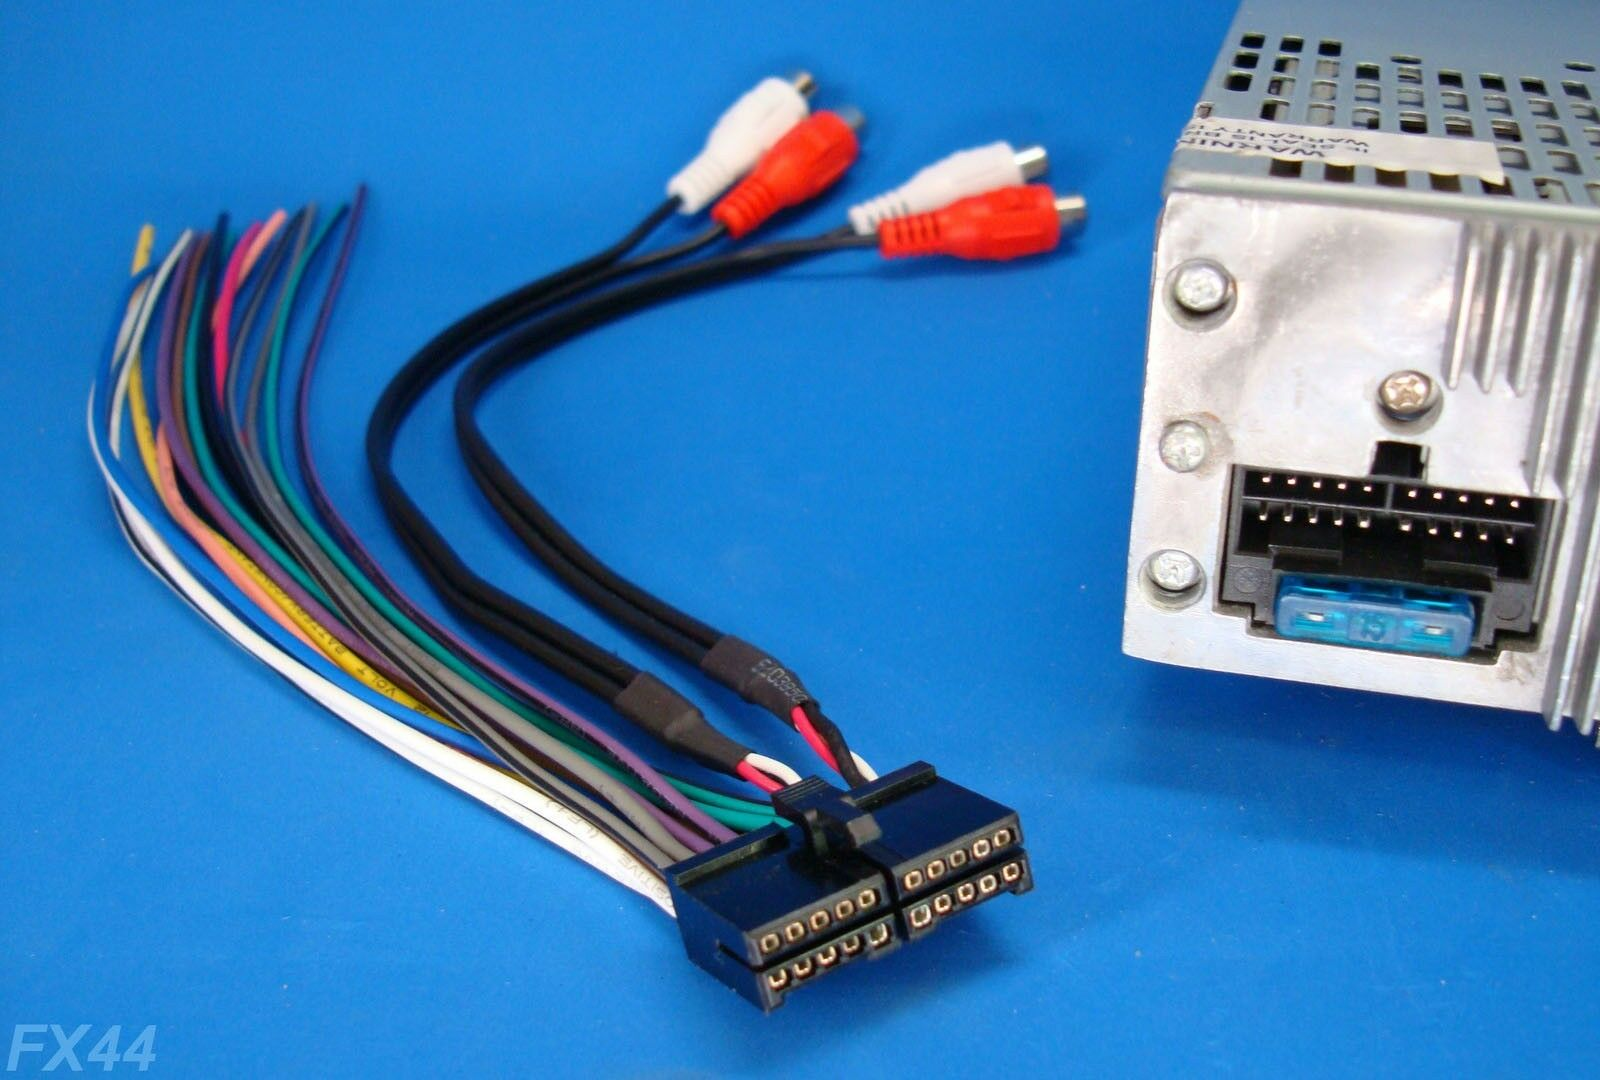 s l1600 xo vision 20 pin radio wire harness stereo power plug back clip XO Vision Wiring Harness Diagram at soozxer.org